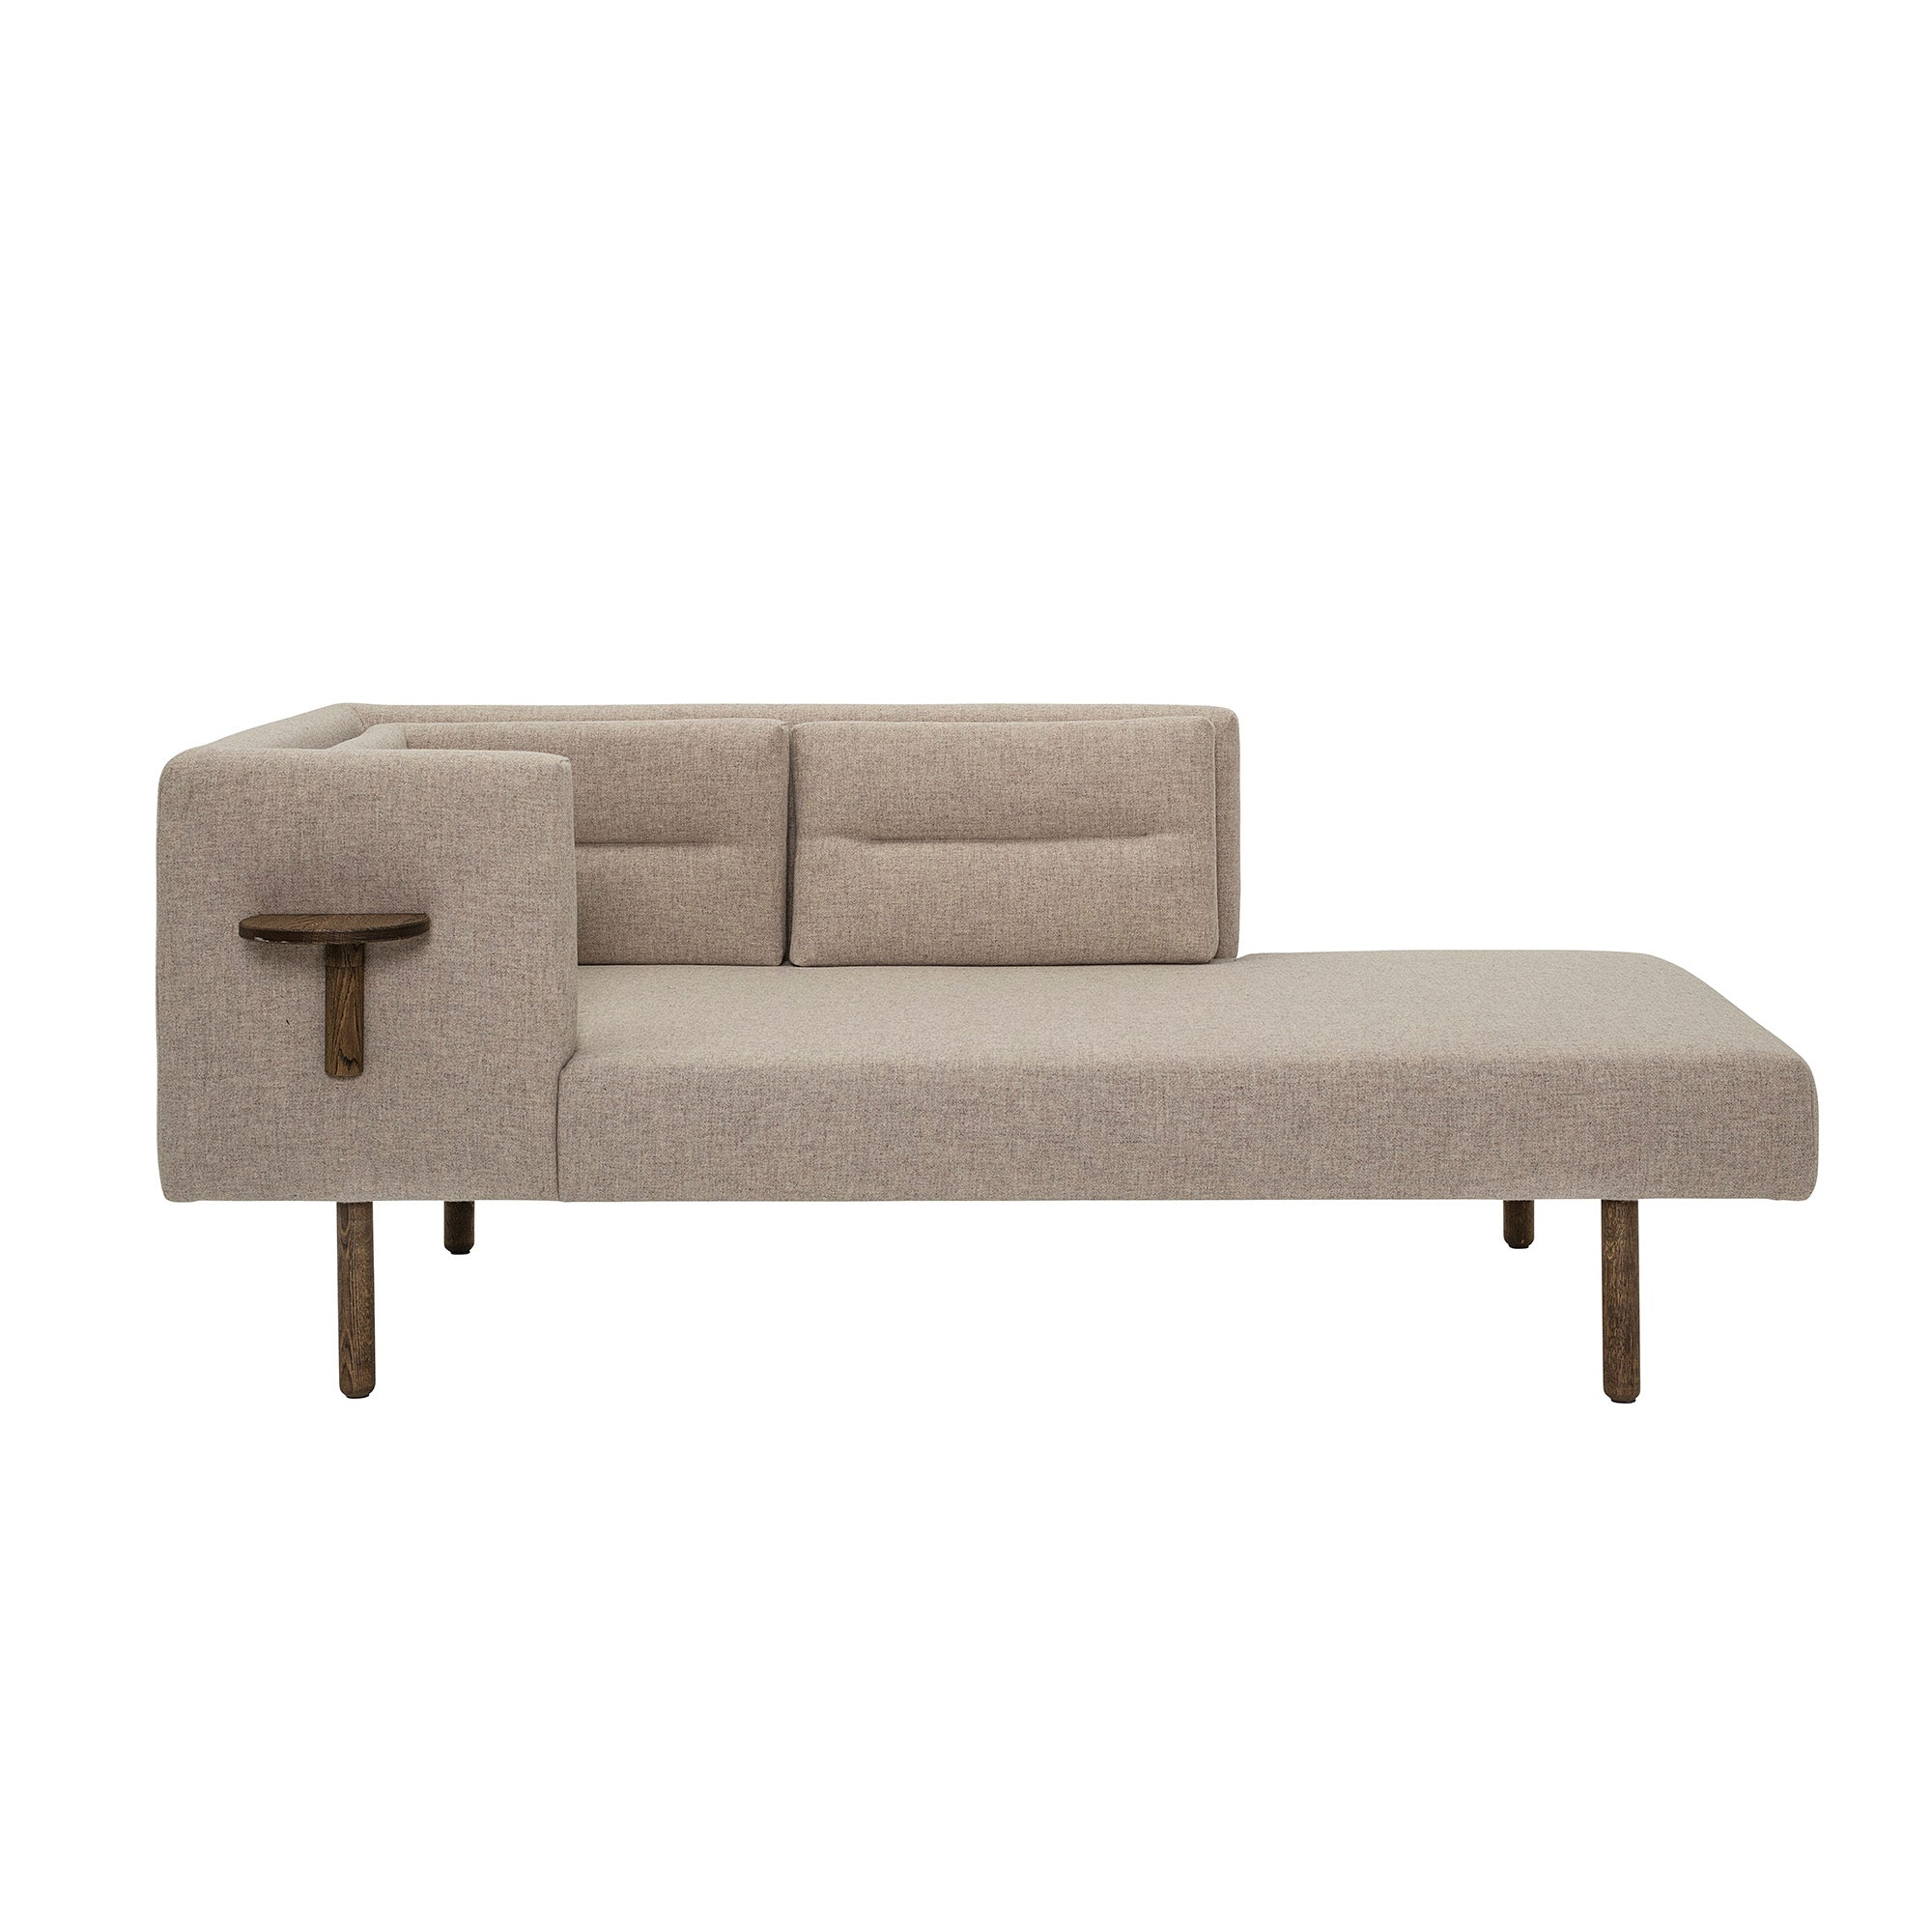 Bloomingville Lean Daybed, Brun, Uld